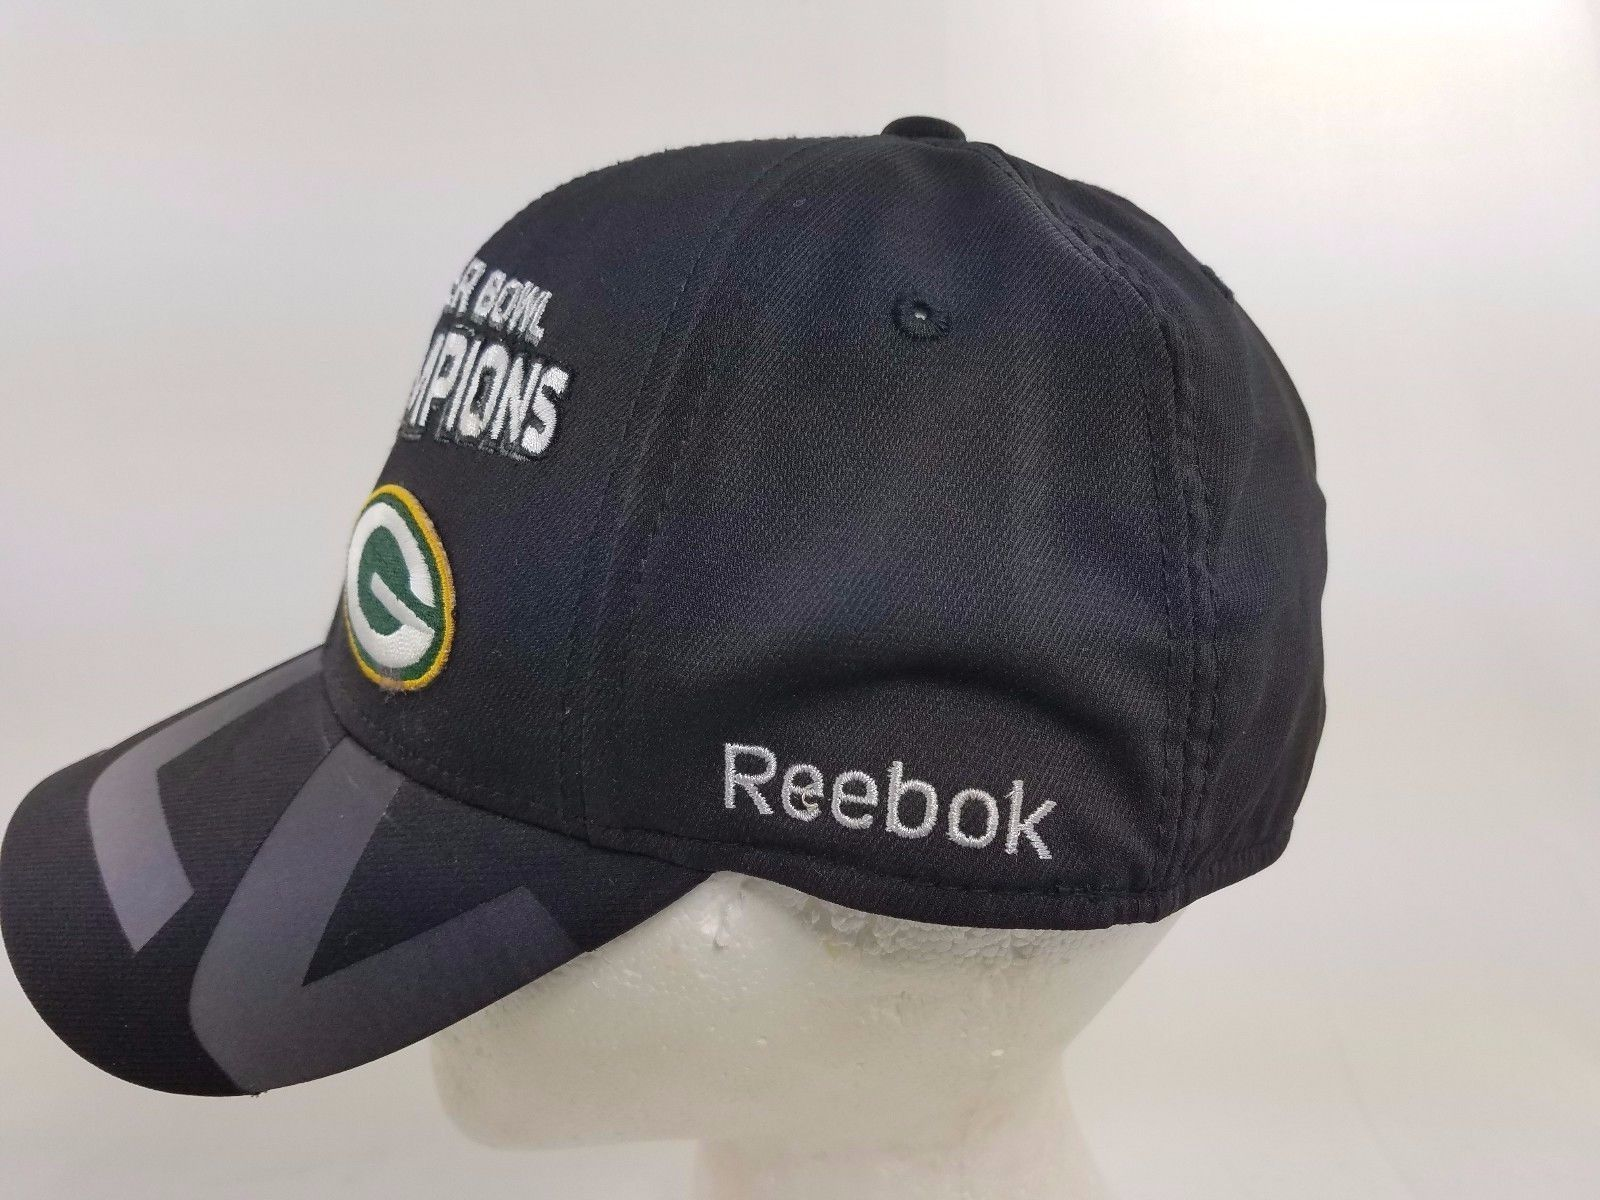 ... NFL Reebok Super Bowl XLV Champions Green Bay Packers Cap Hat one size  fits all ... c28cbf751